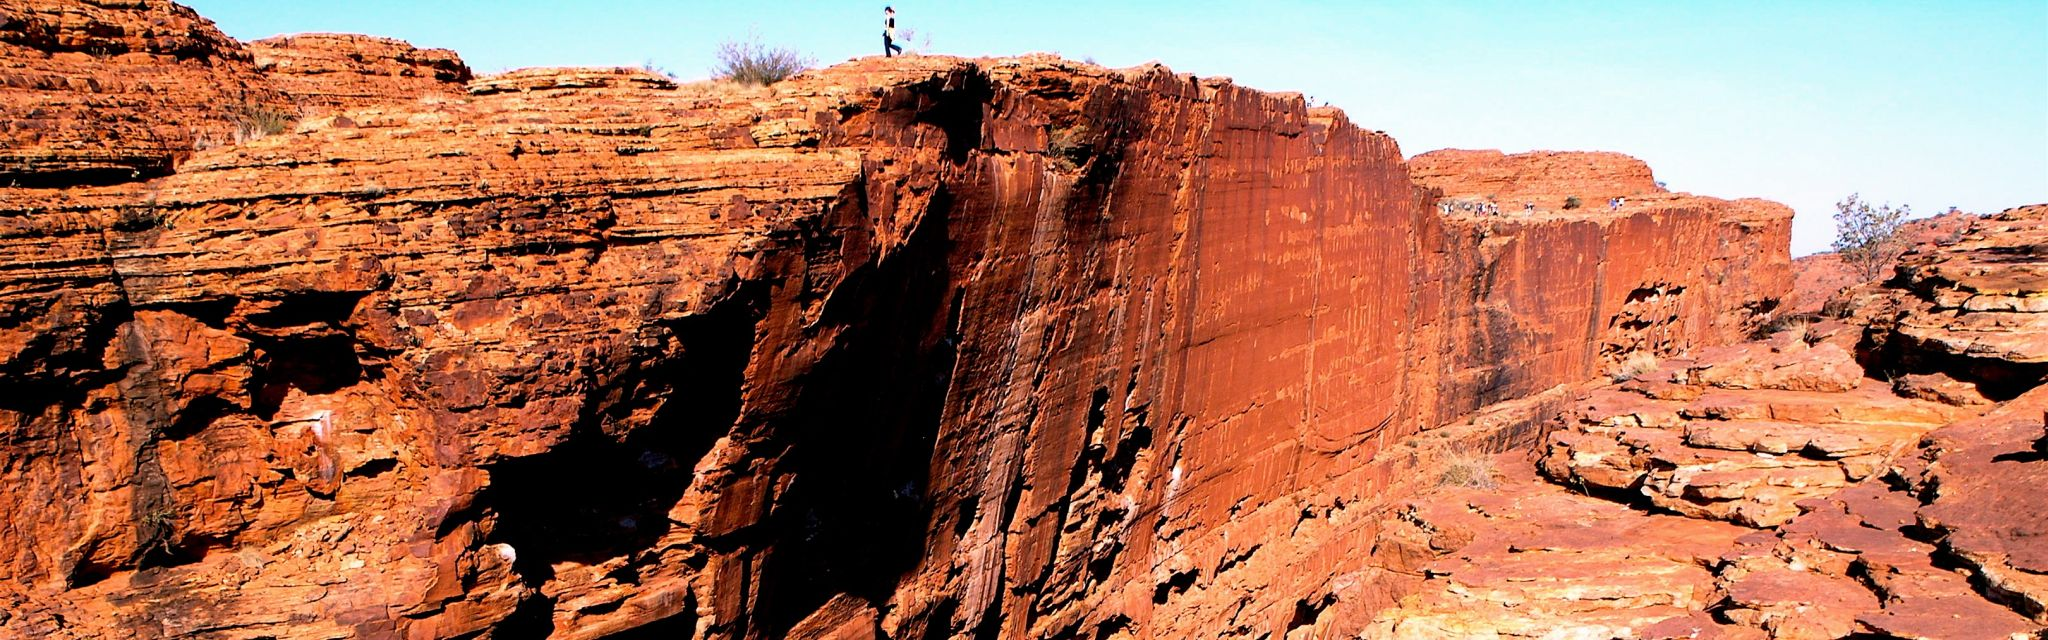 Sheer walls of Kings Canyon taken on Nature Bound Australia Red Centre Tour